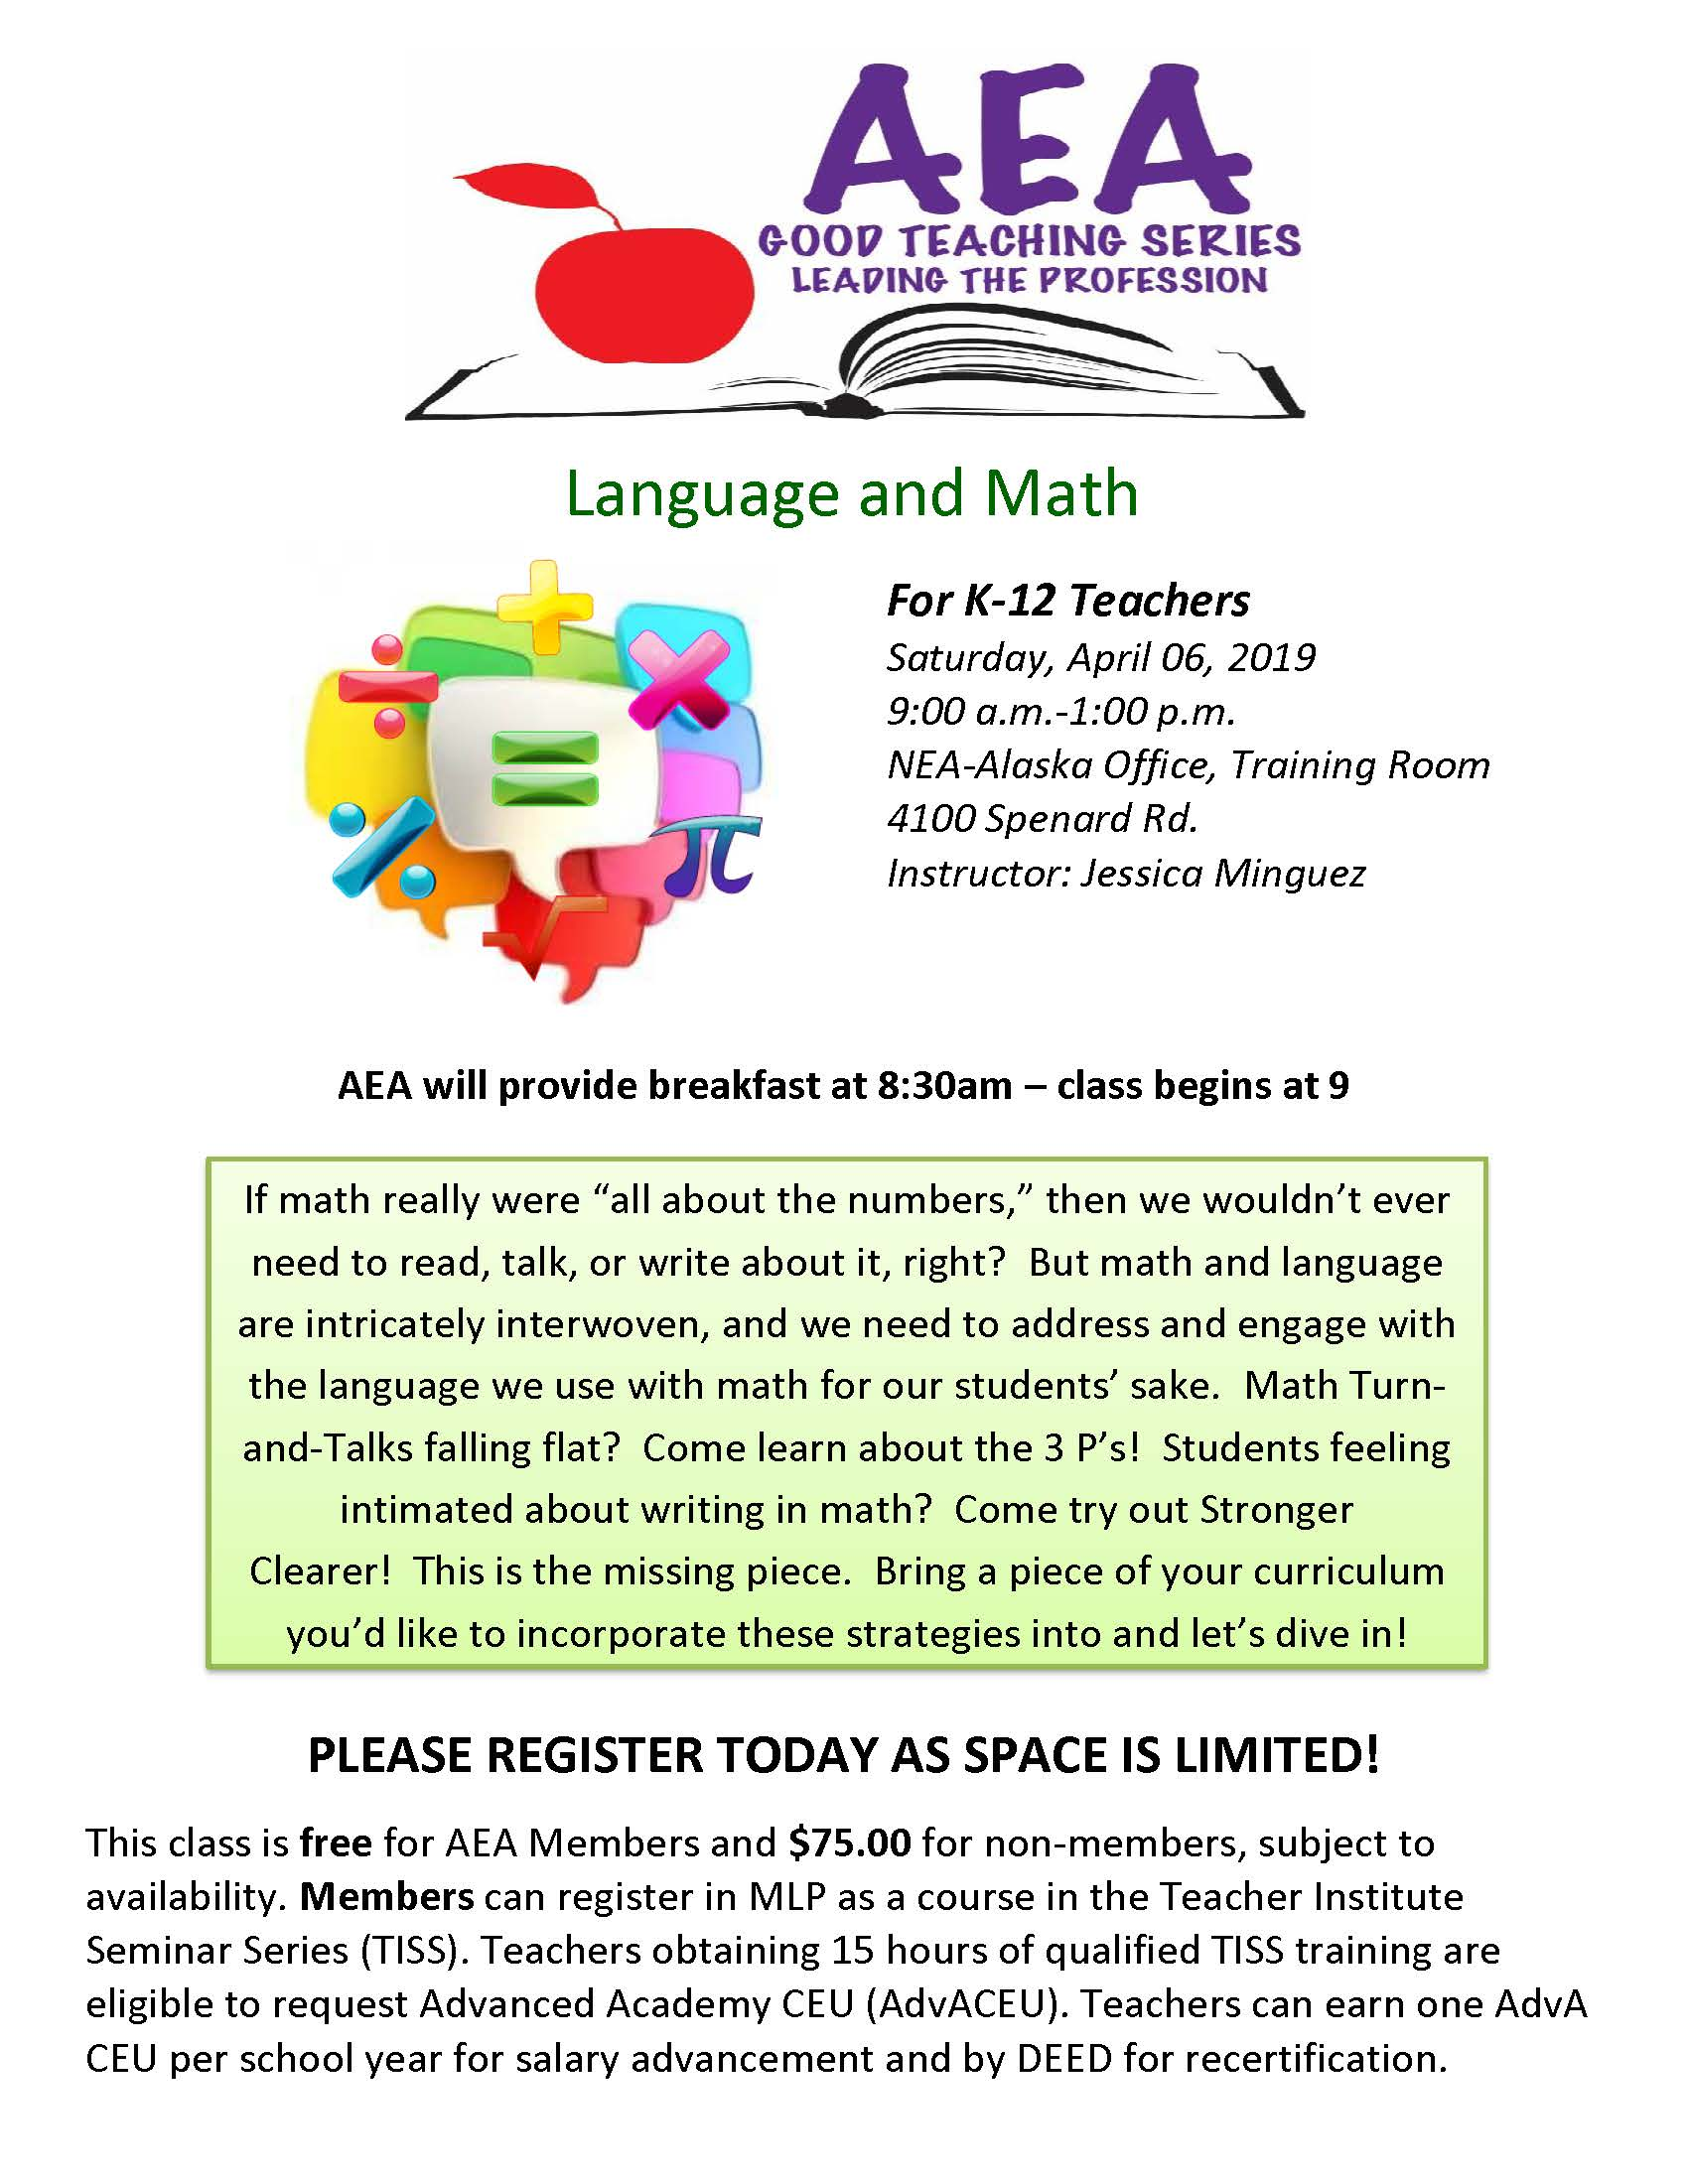 PD Class Flyer Apr 06_2019 Language and Math.jpg